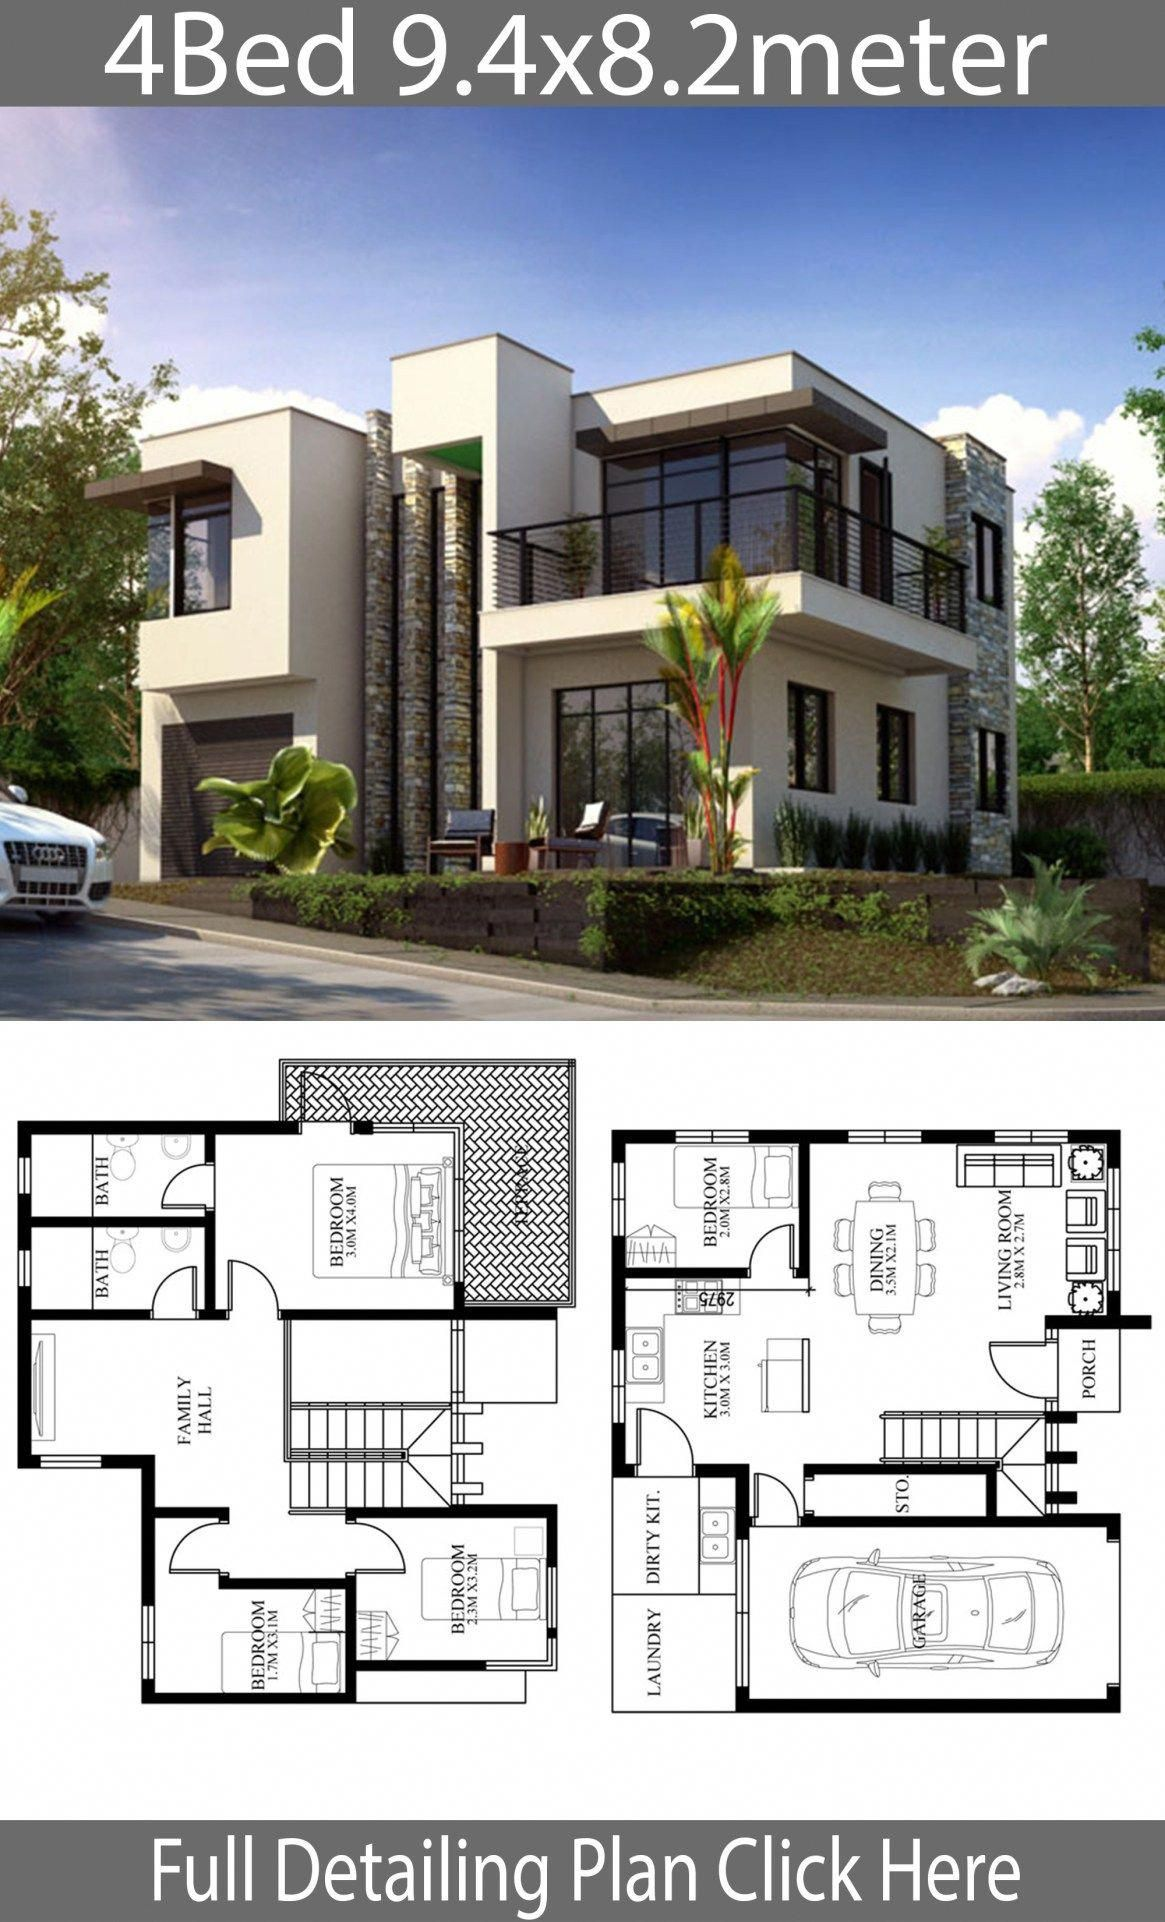 Small Home Design Plan 9 4x8 2m With 4 Bedrooms Home Design With Plansearch Luxuryhomeinte Beautiful House Plans House Front Design Modern House Floor Plans